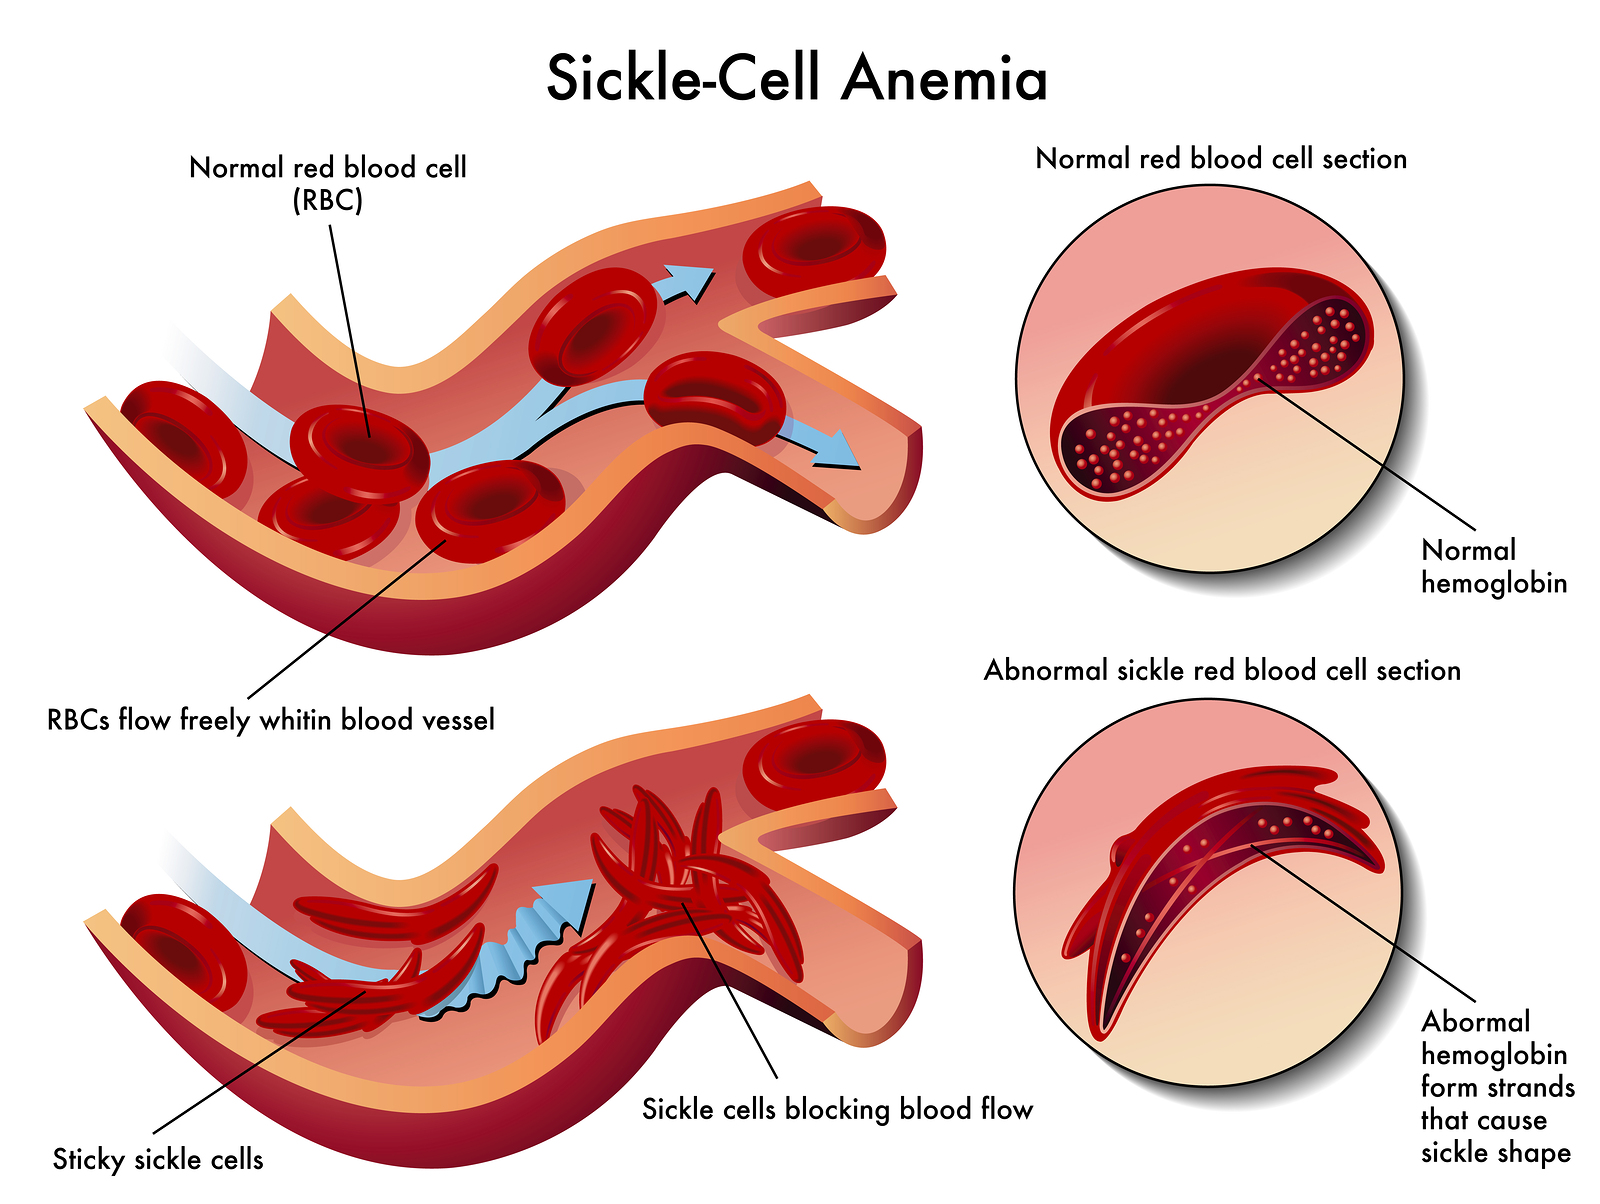 sickle cell anemia addi s blog medical illustration of the effects of sickle cell anemia